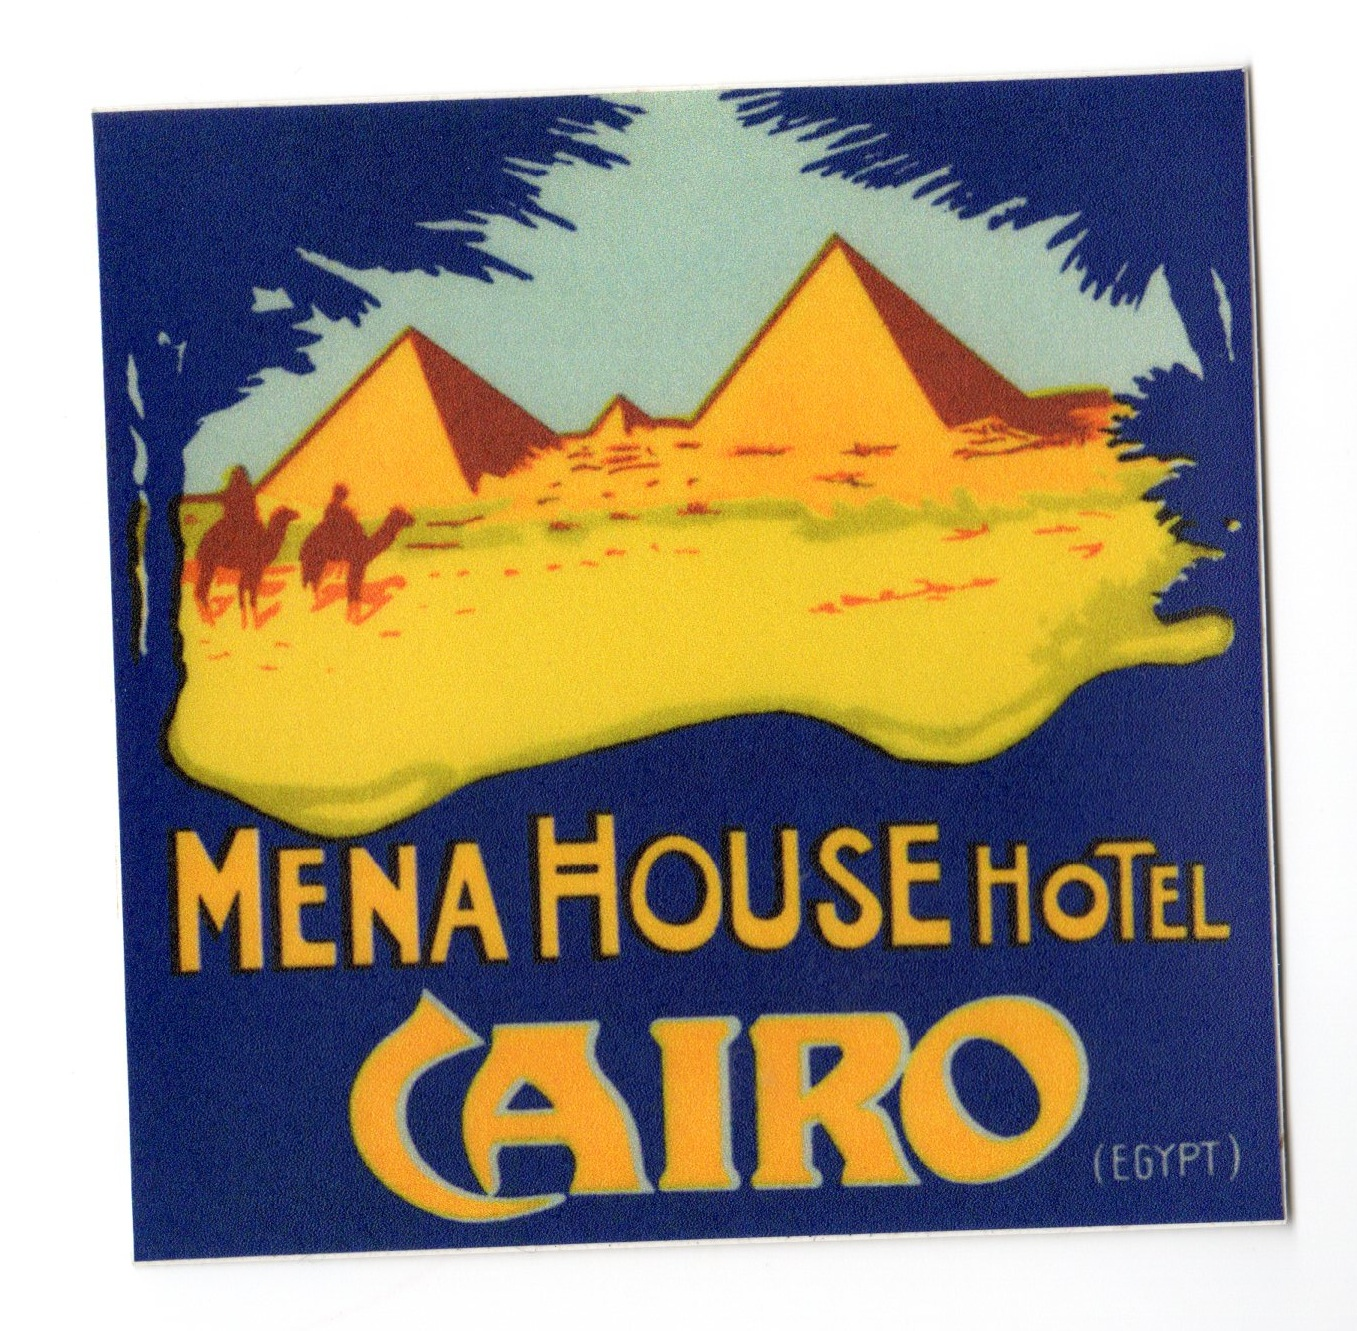 Mena House hotel sticker